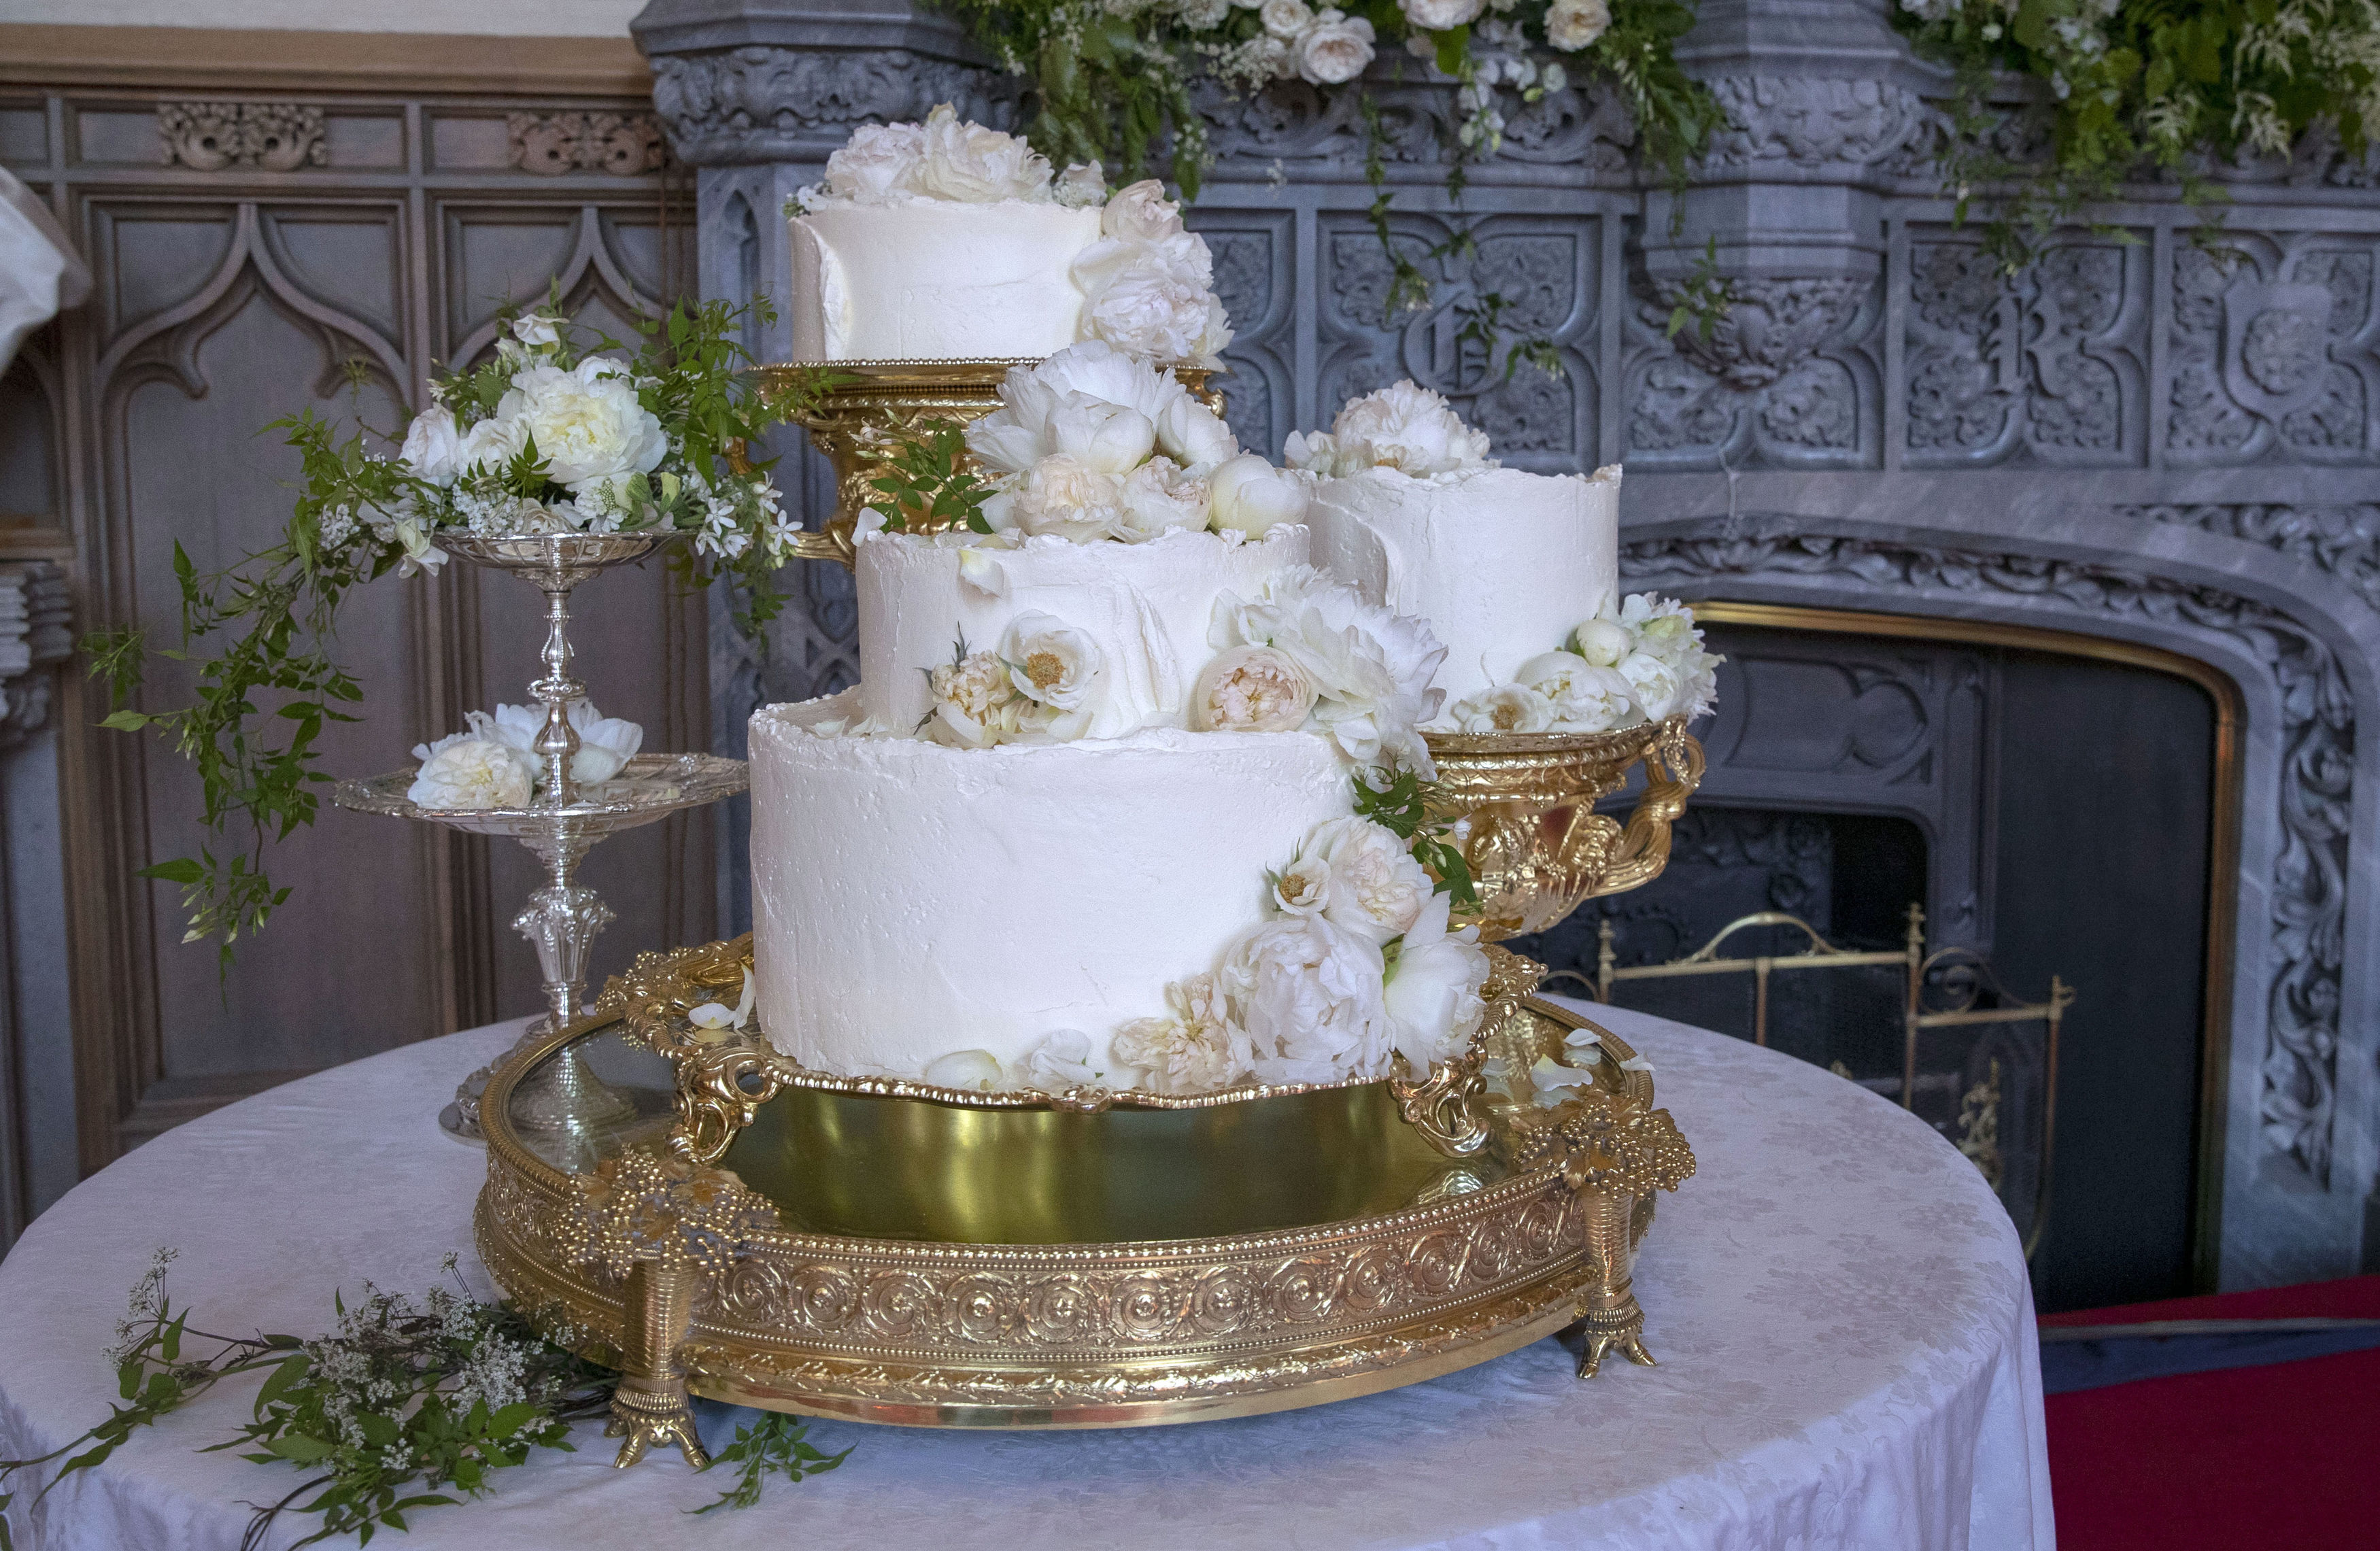 Harry and Meghan's cake